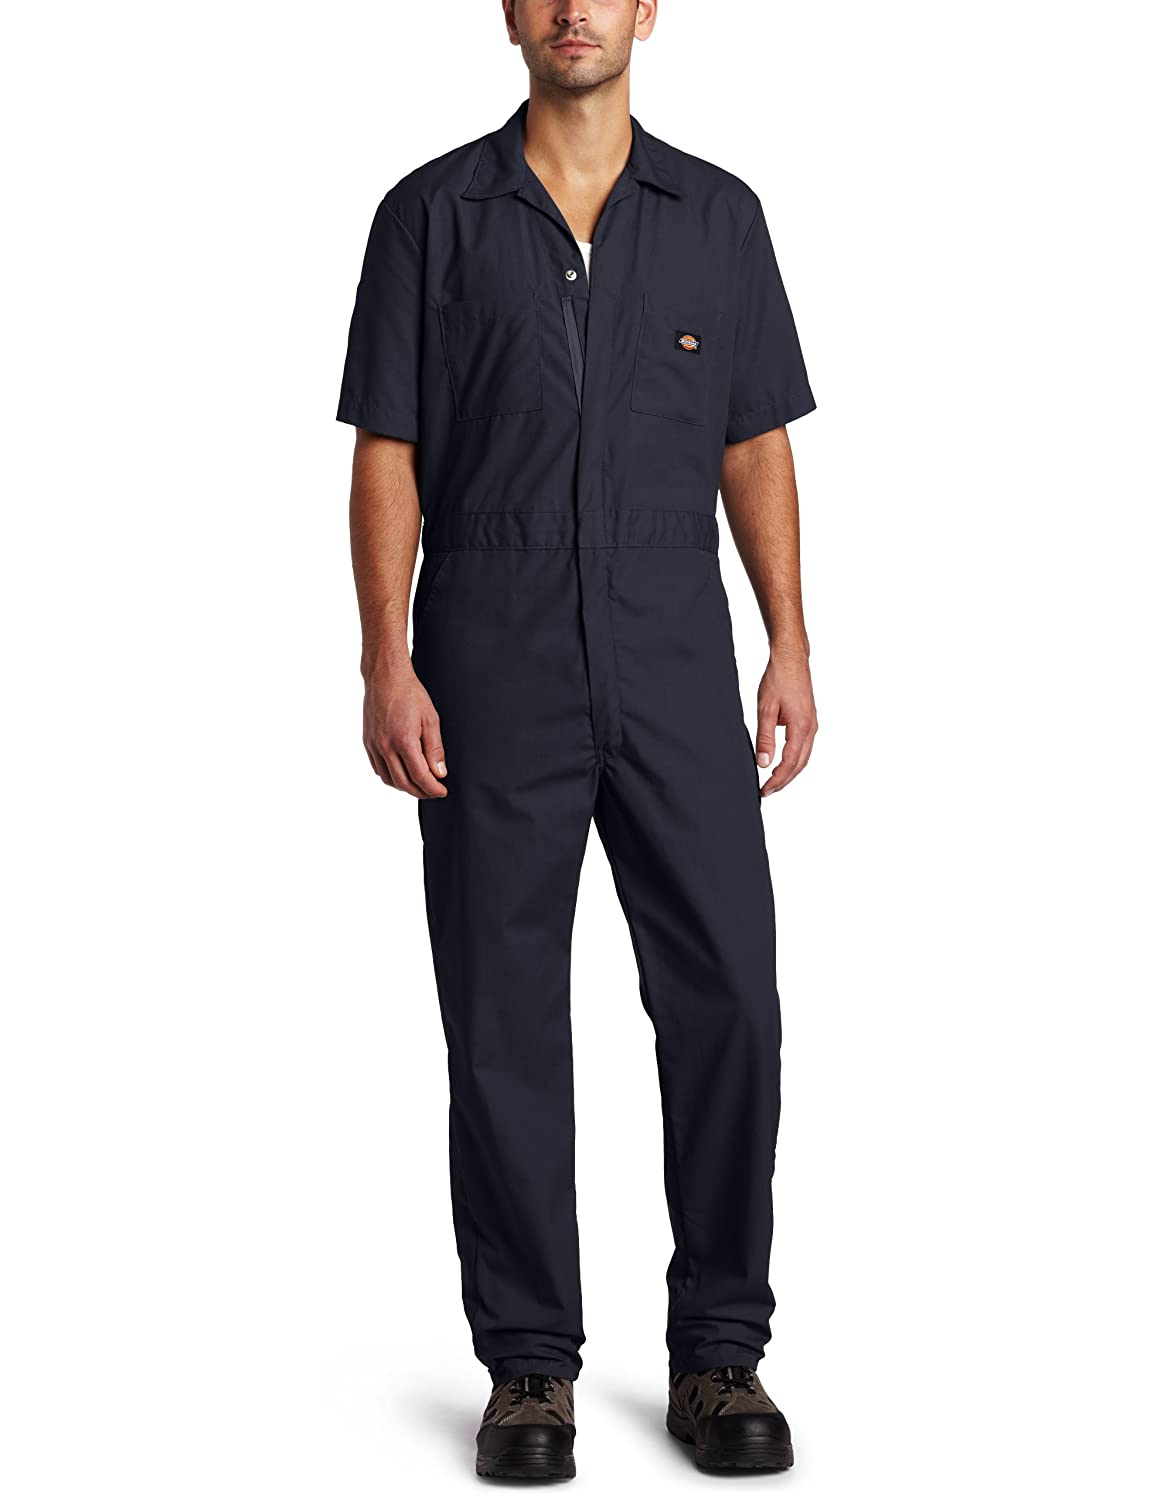 Men's Vintage Pants, Trousers, Jeans, Overalls Short-Sleeve Coverall  AT vintagedancer.com